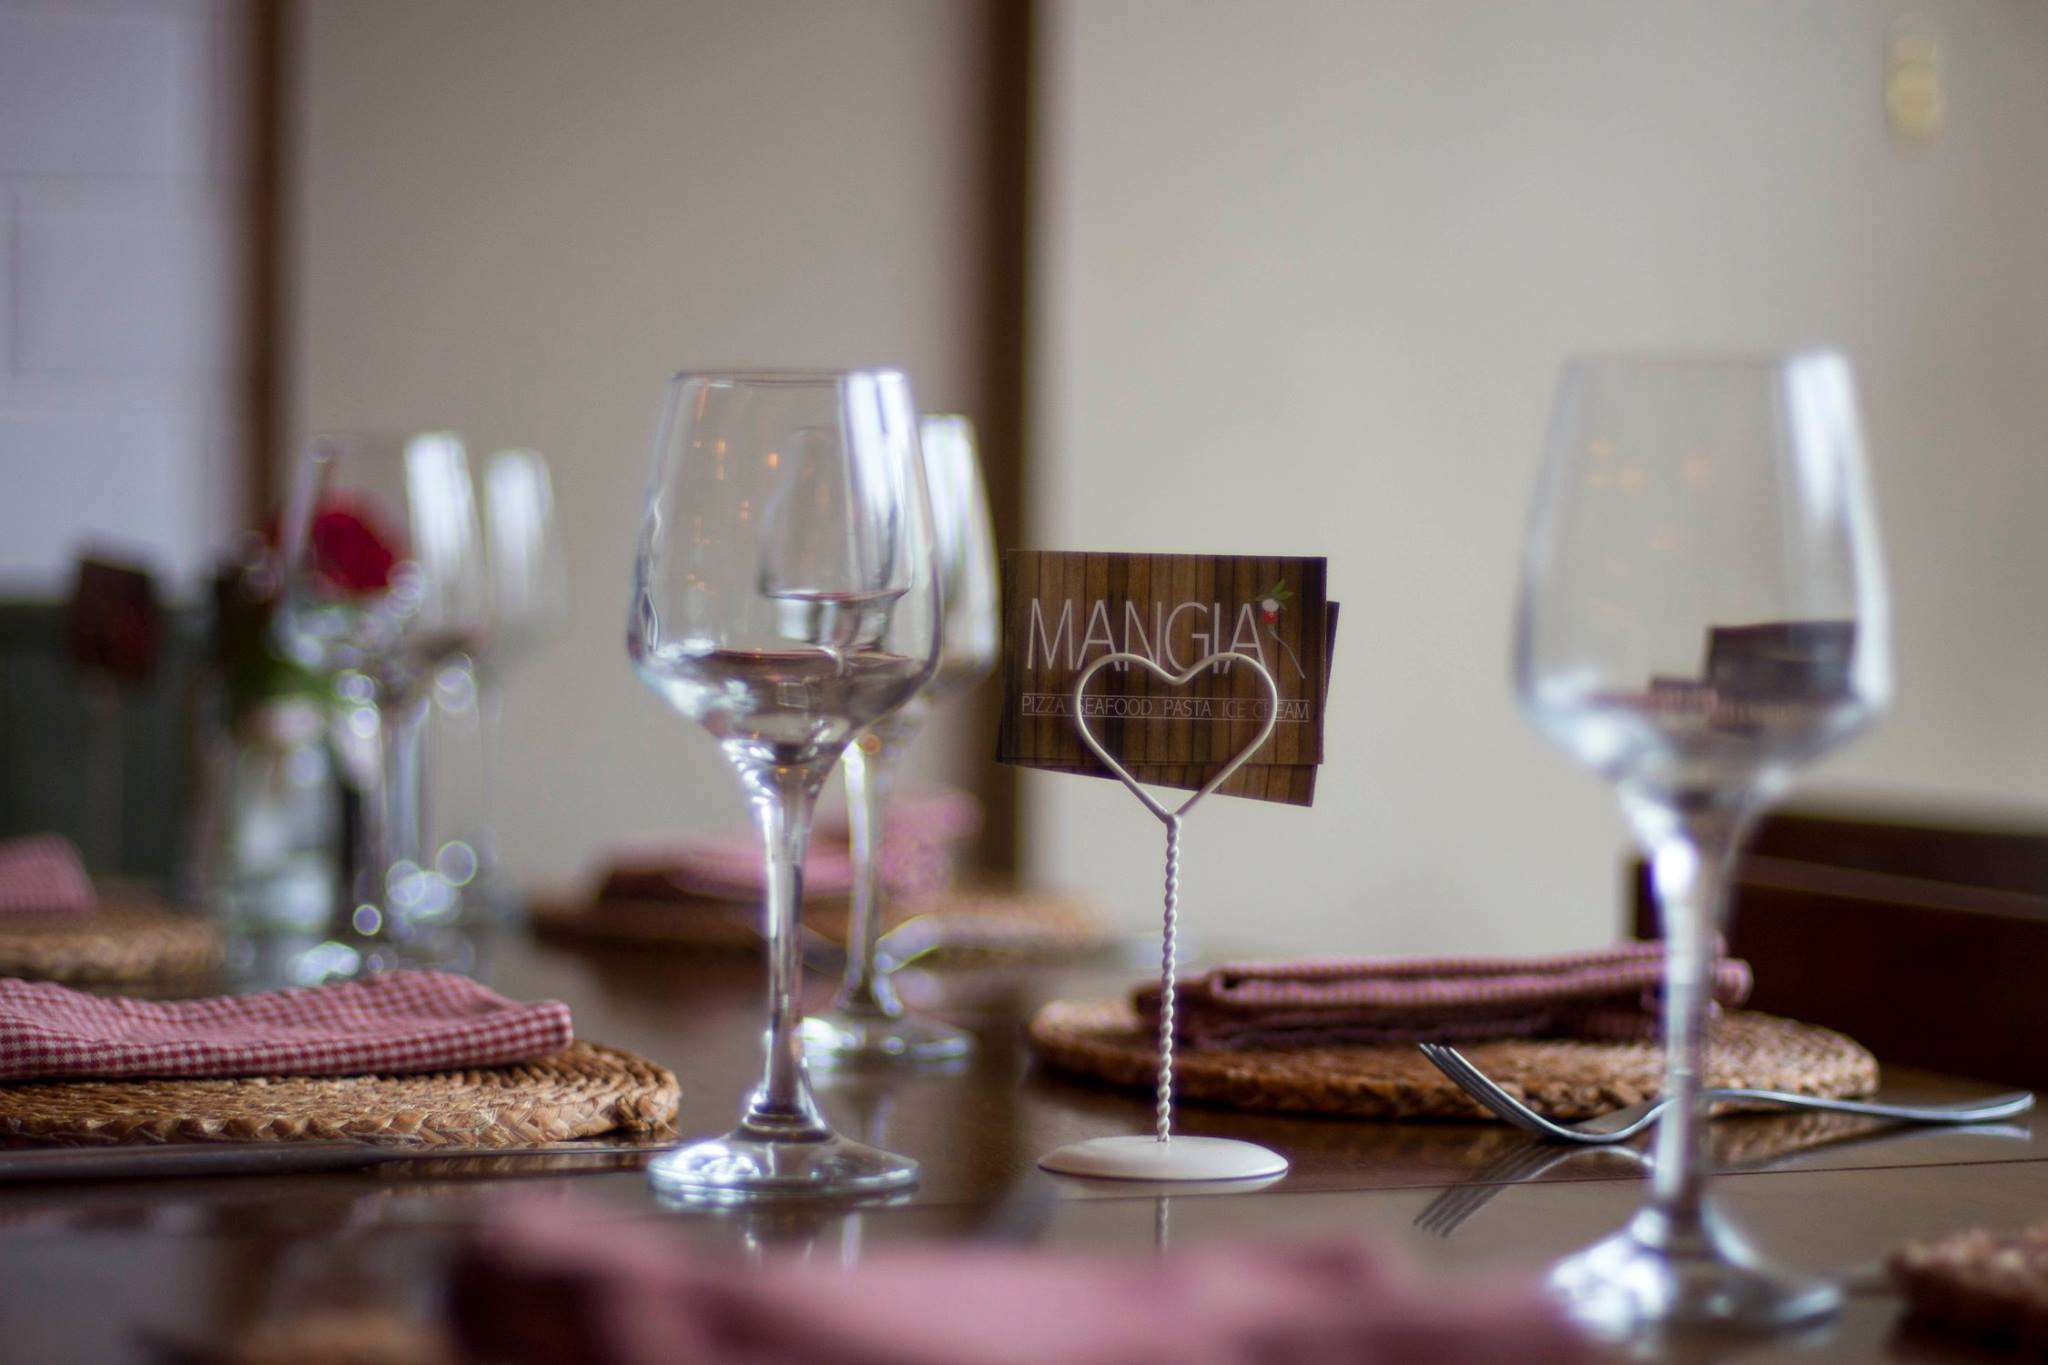 Table set with wine glasses, folded napkins, and card stand with a Mangia business card